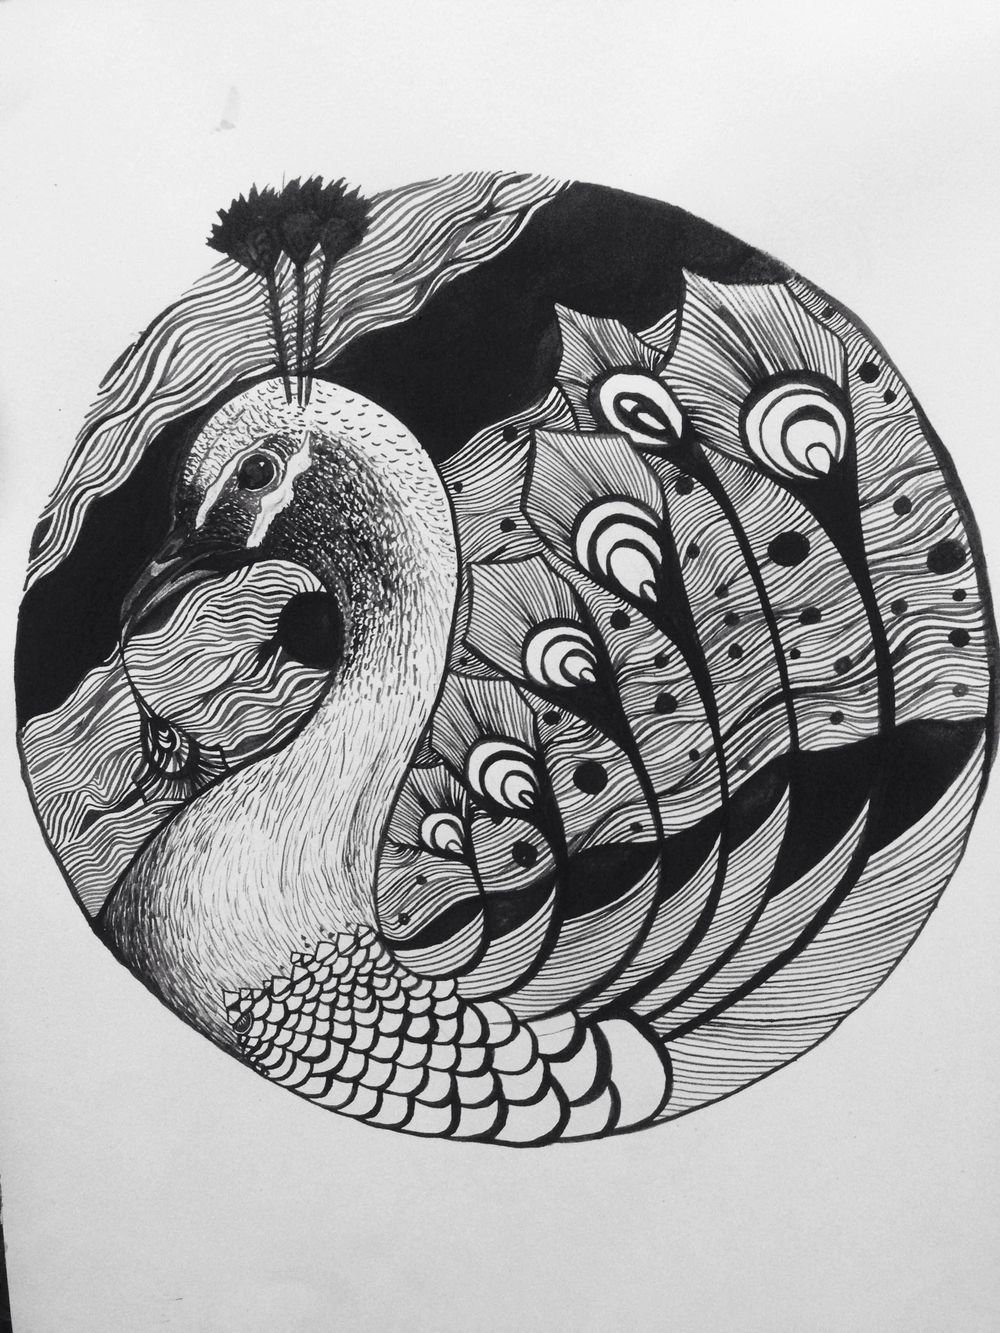 SEA PEACOCK - image 1 - student project